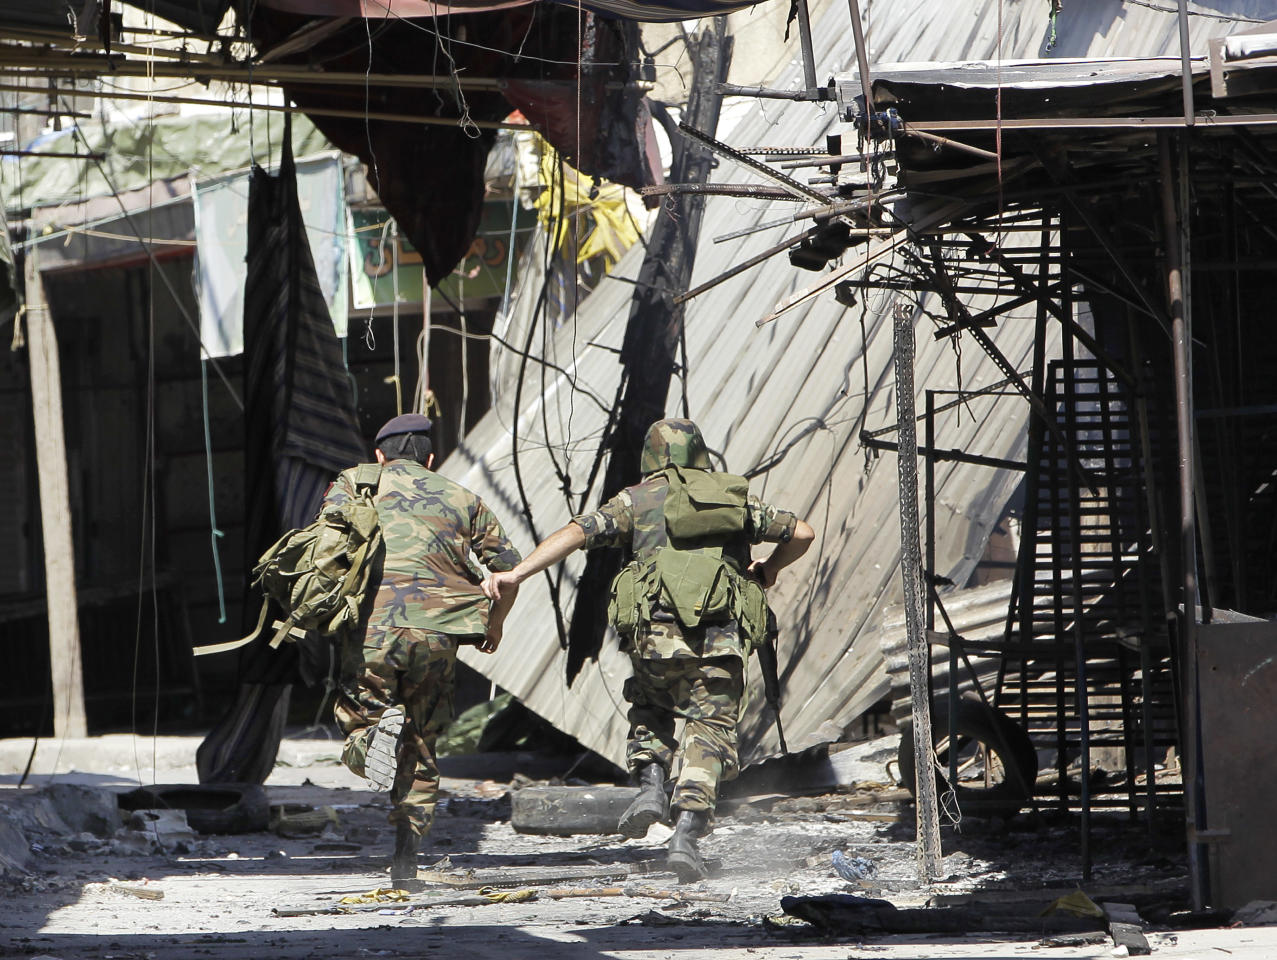 Lebanese army soldiers run from sniping at an outdoor market that was damaged during clashes that erupted between pro and anti-Syrian regime gunmen in the northern port city of Tripoli, Lebanon, Friday, Aug. 24, 2012. The latest round of fighting first erupted on Monday in northern Lebanon and at least 15 have been killed in Tripoli this week and more than 100 have been wounded in fighting that is a spillover from Syria's civil war. (AP Photo/Hussein Malla)